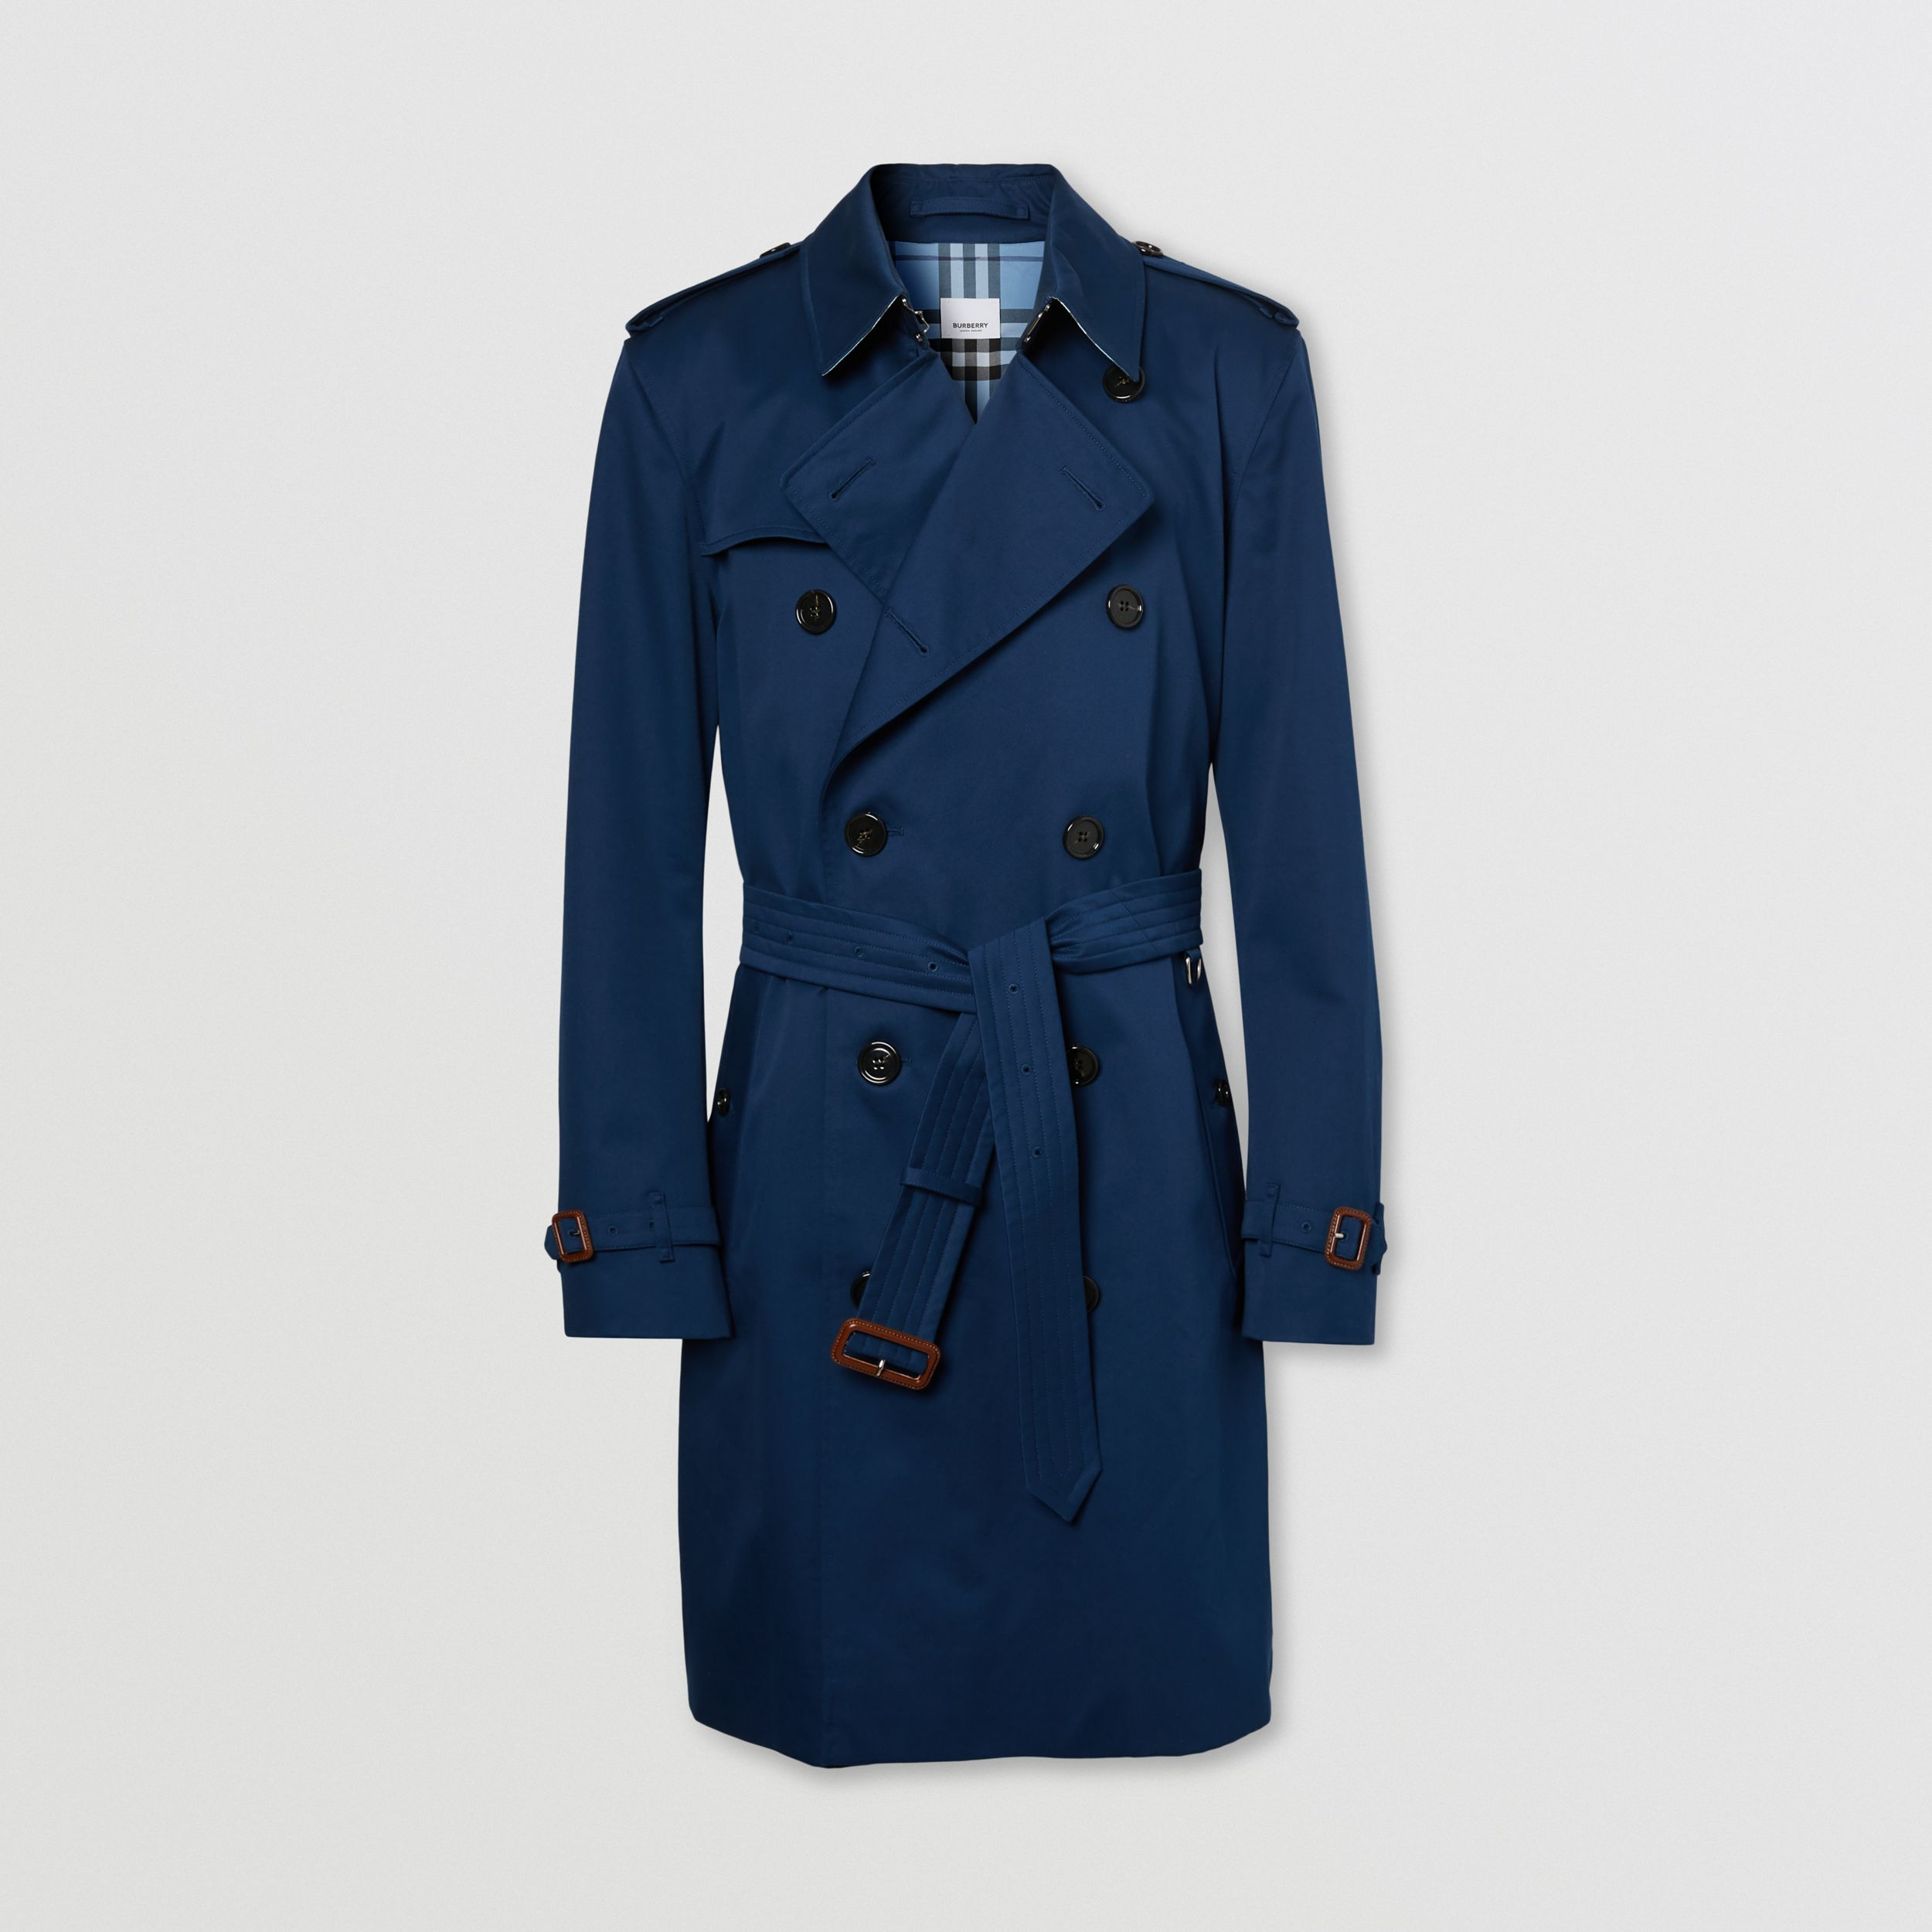 The Mid-length Kensington Trench Coat in Ink Blue - Men | Burberry - 4